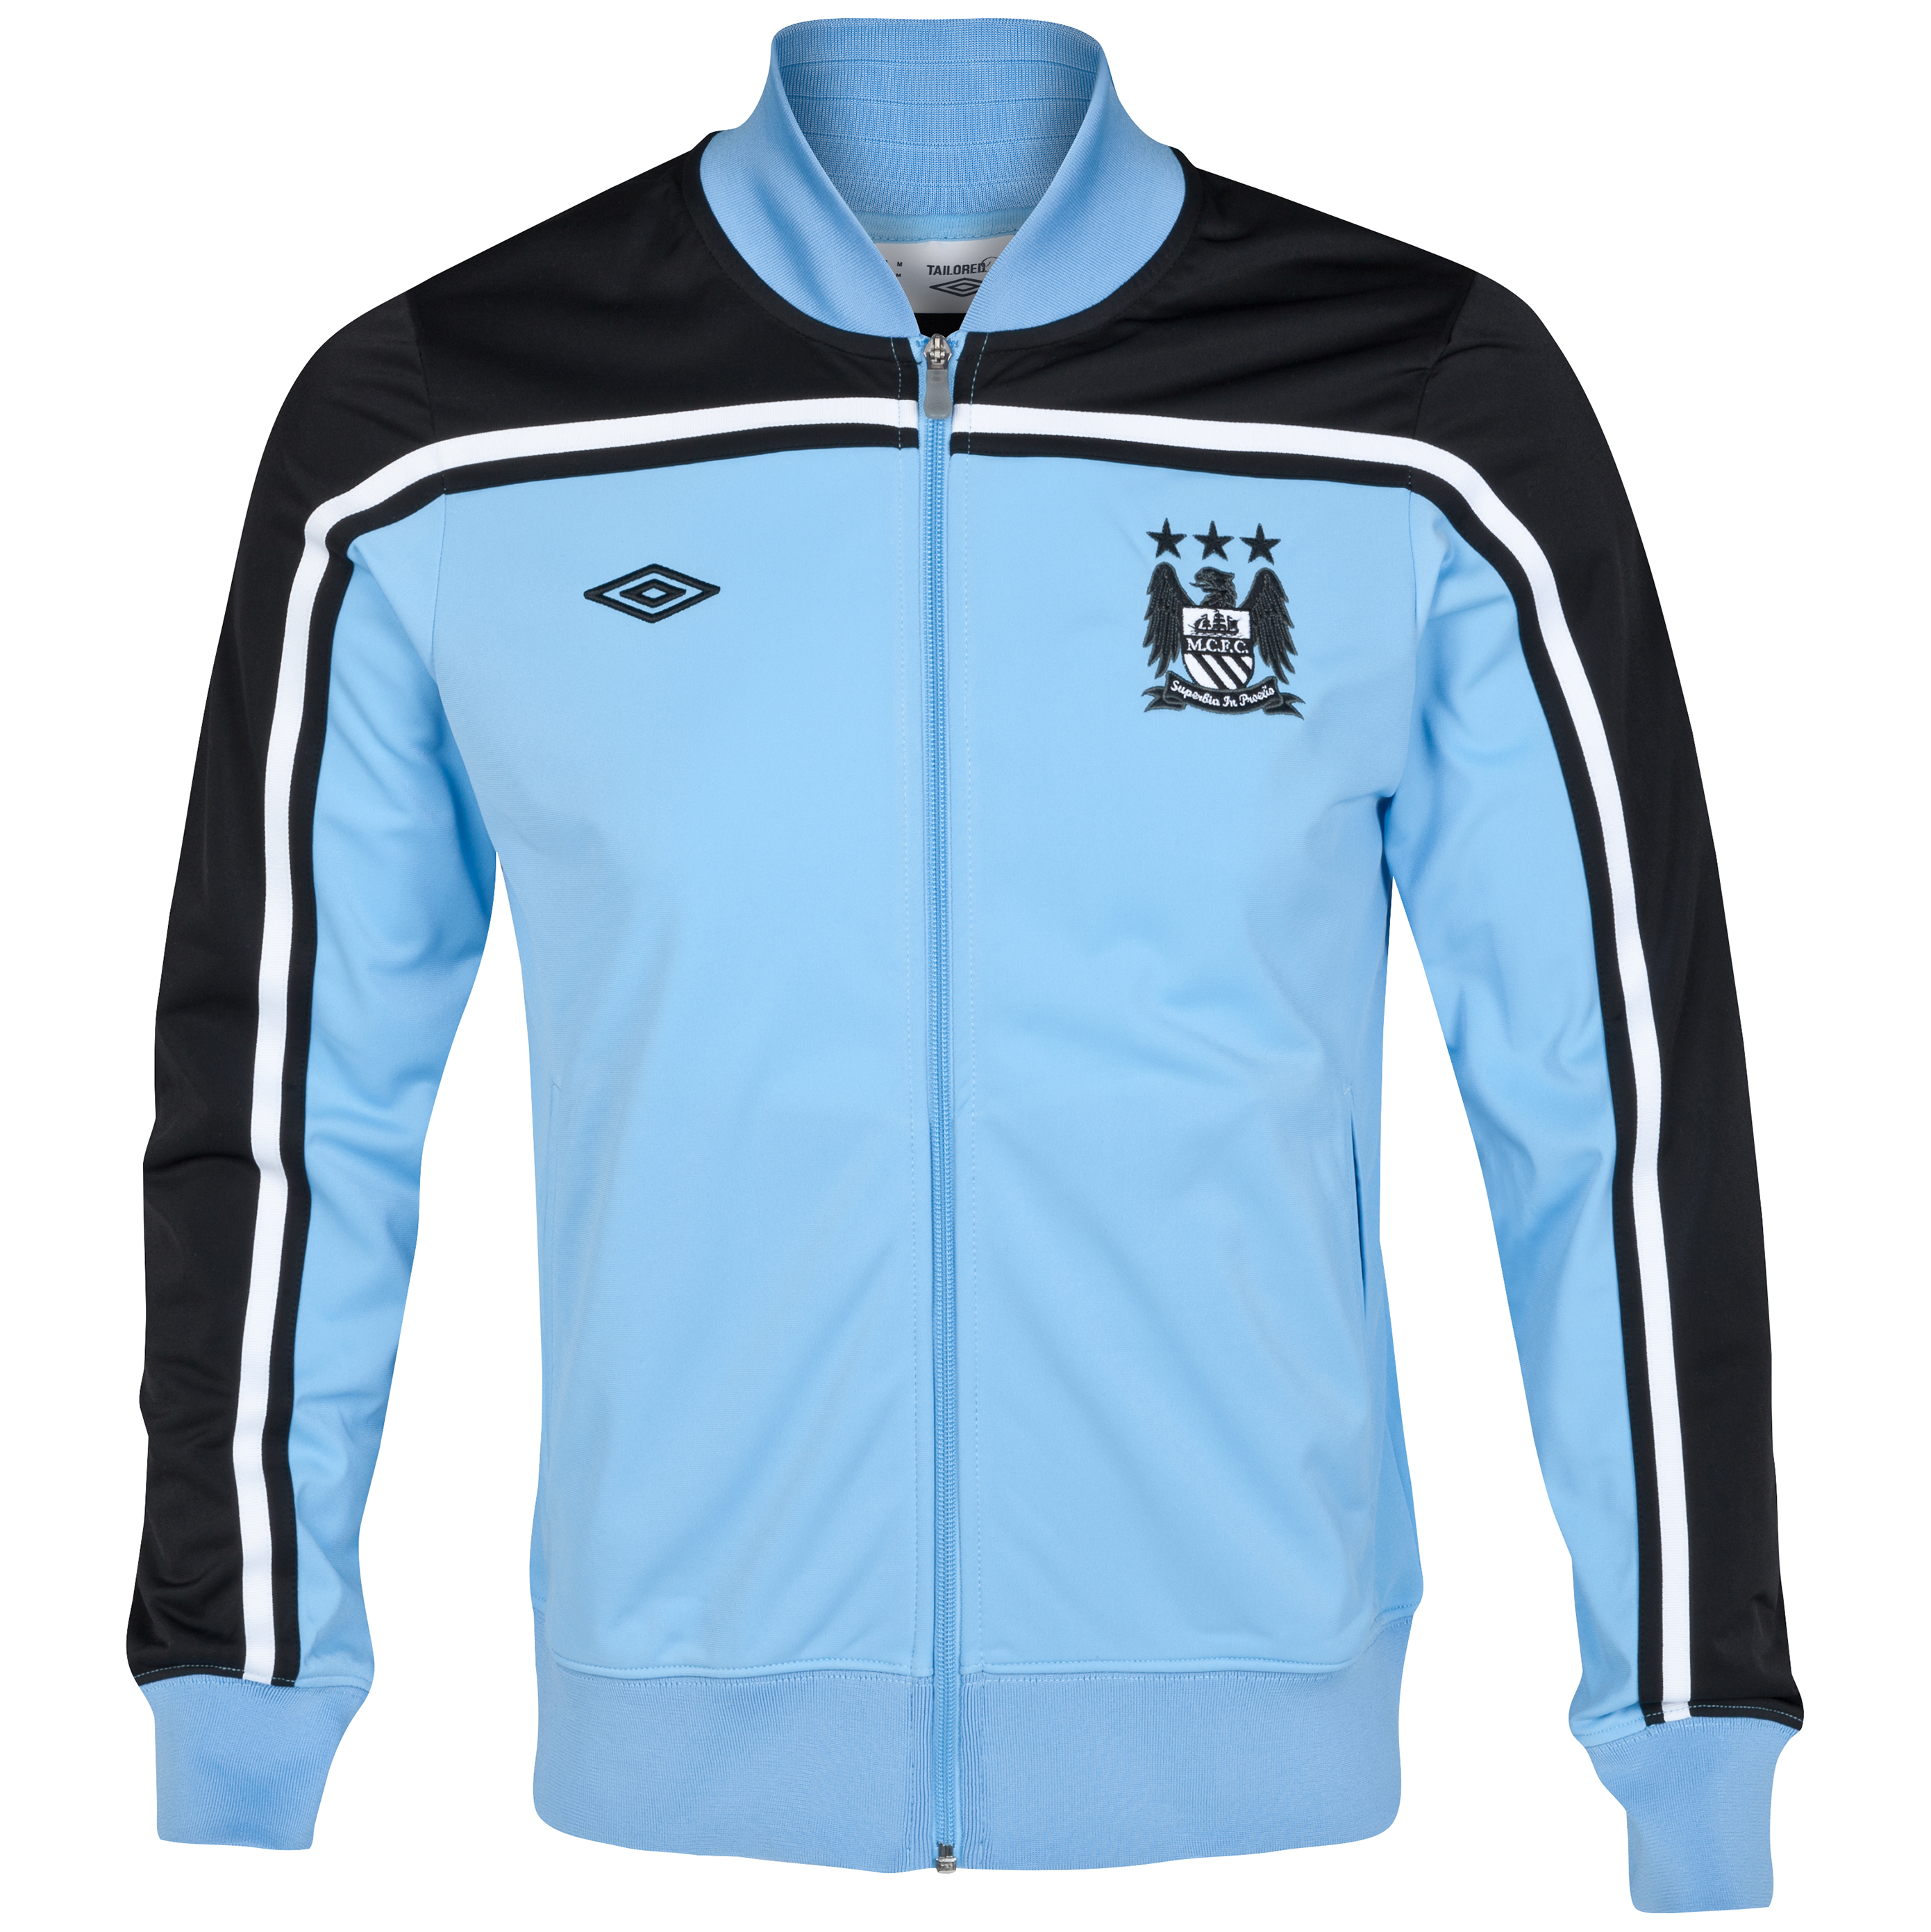 Manchester City WTC Stevenson Track Jacket - Vista Blue/Black